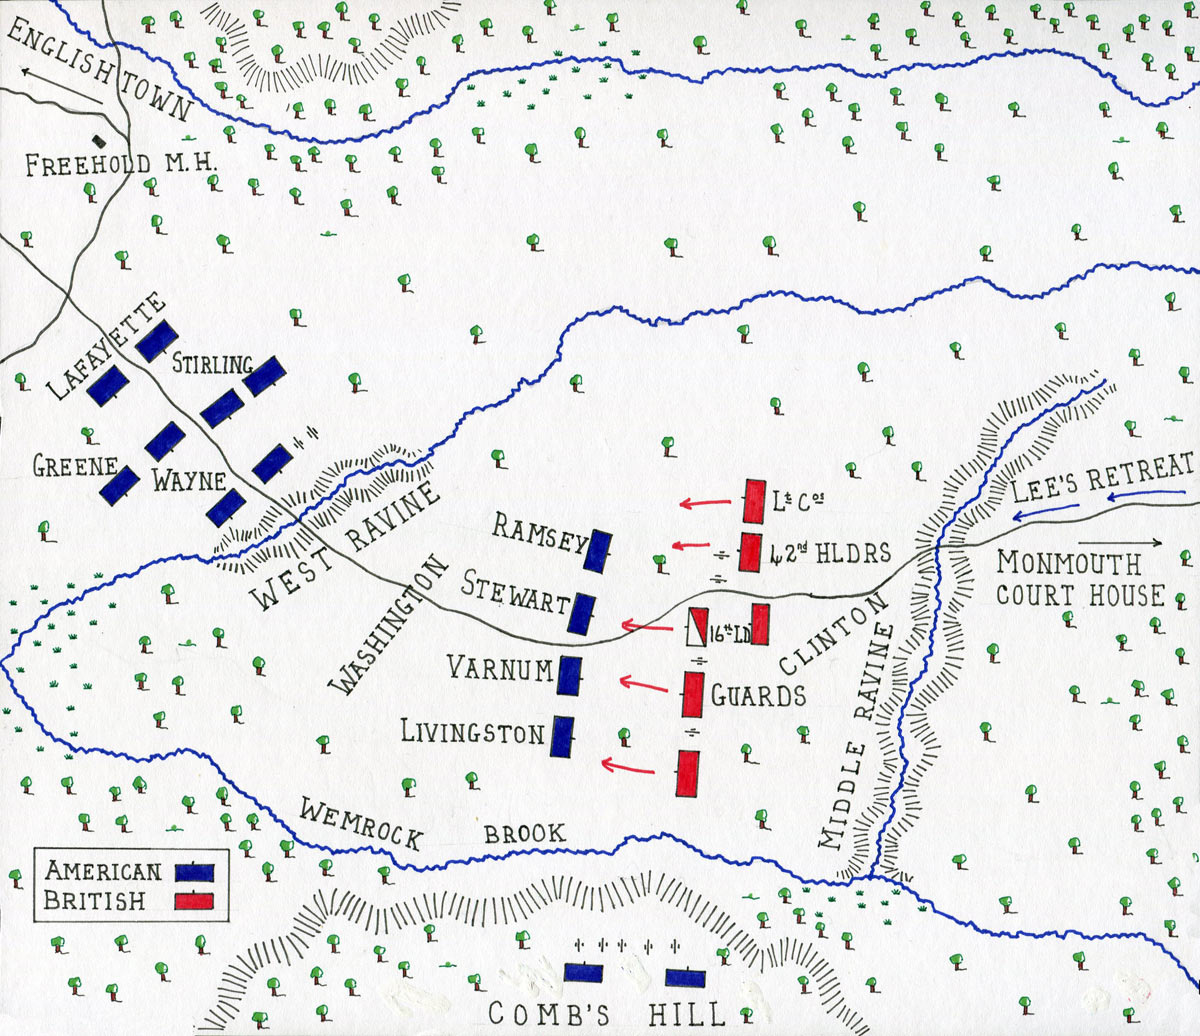 Map of Washington's advance at the Battle of Monmouth on 28th June 1778 in the American Revolutionary War: map by John Fawkes